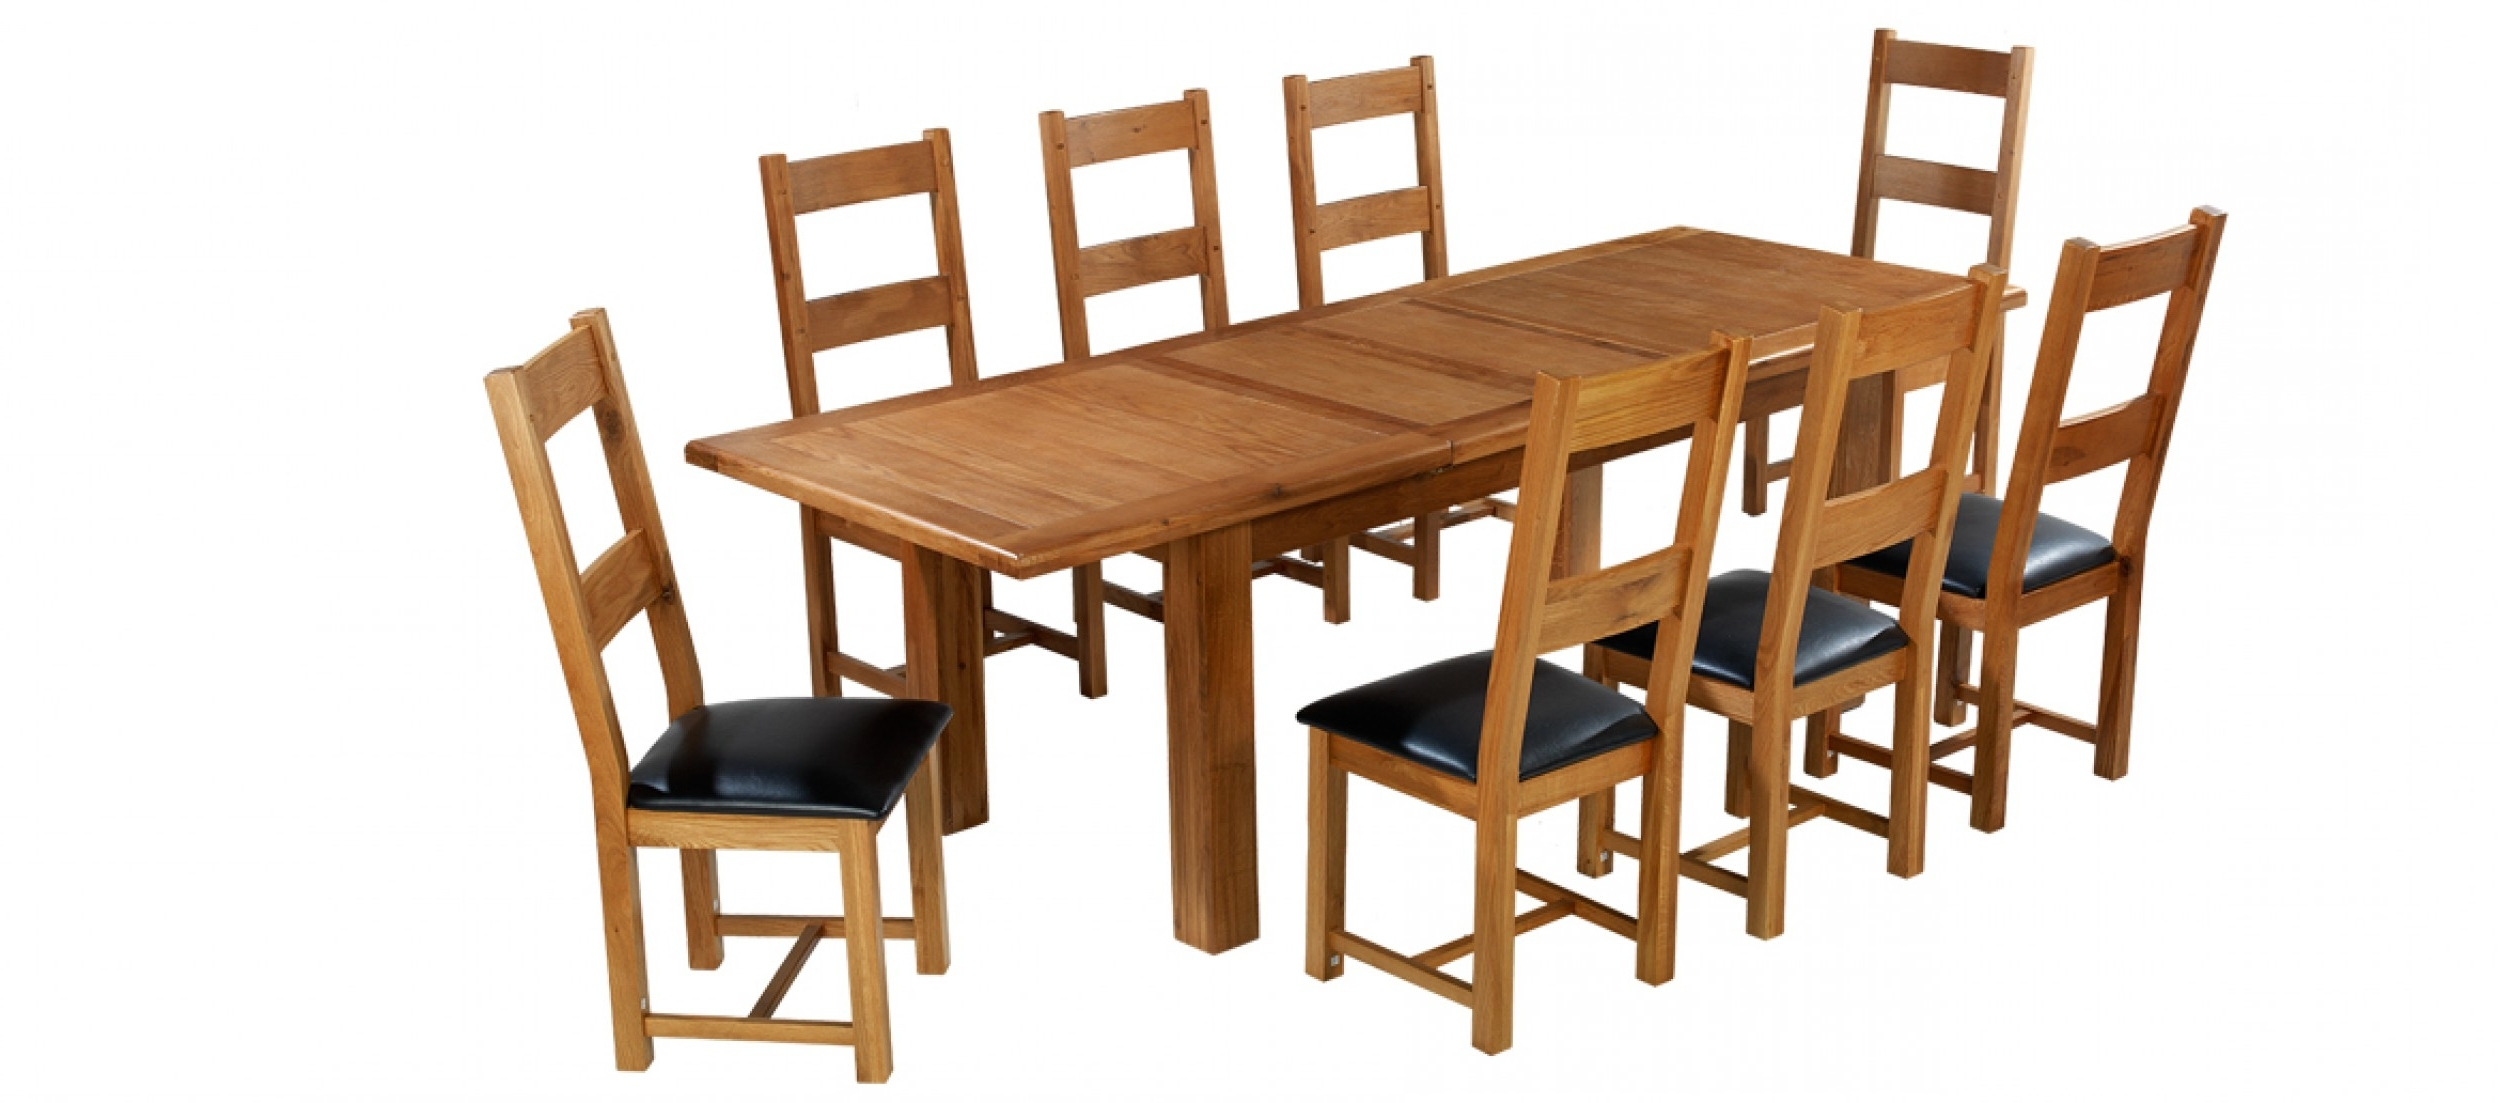 Quercus Regarding Extending Dining Table And Chairs (Gallery 25 of 25)